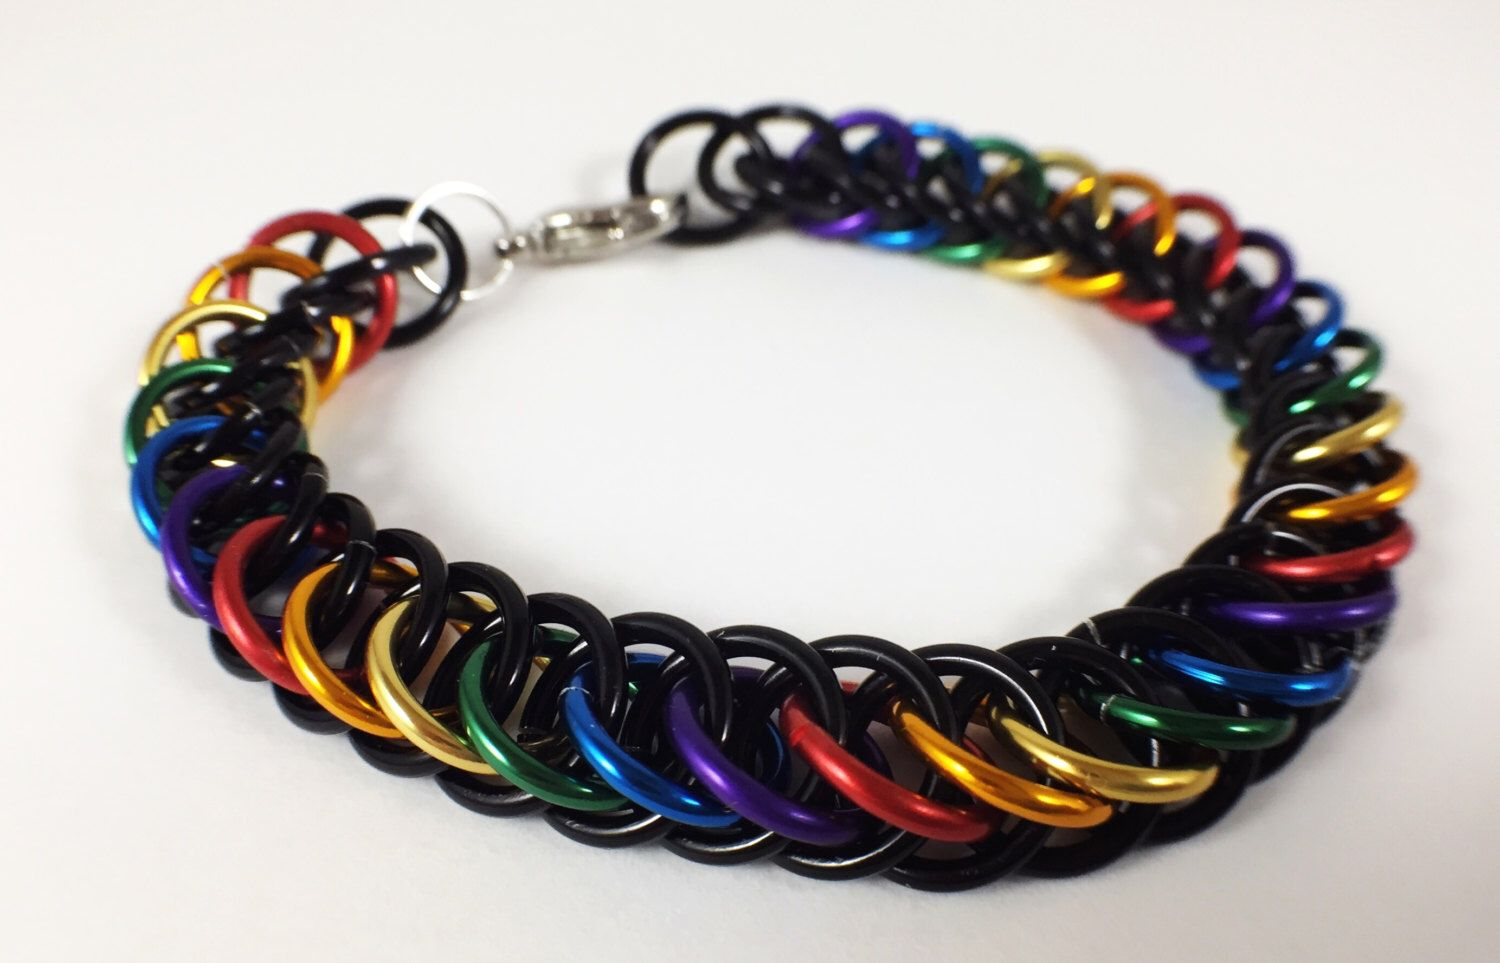 gay bracelet pride products rainbow gaypridehub love hope lgbt